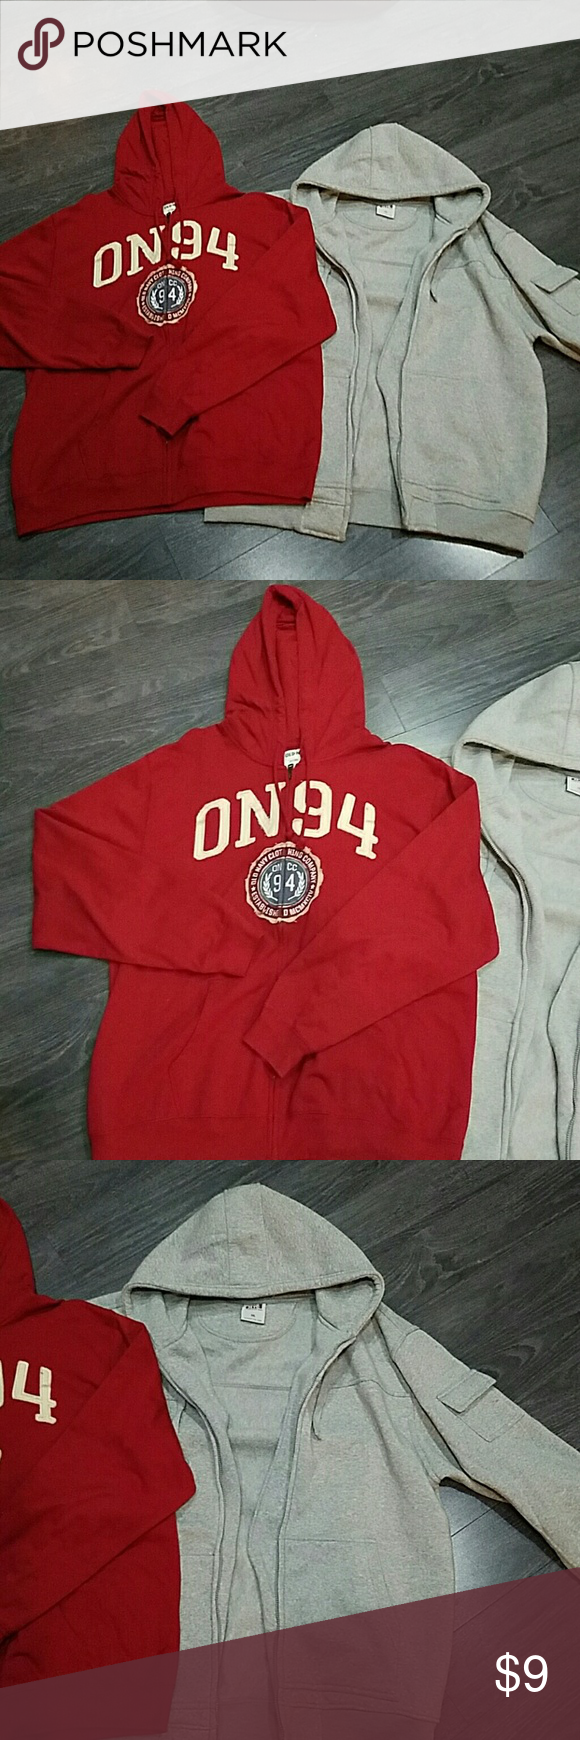 Mens hoodie bundle Red goodie 2x grey hoodie 3x.  Red hoodie  is nwot.  Grey hoodie is in great condition but the zipper doesn't work. Priced to reflect. Sweaters Zip Up